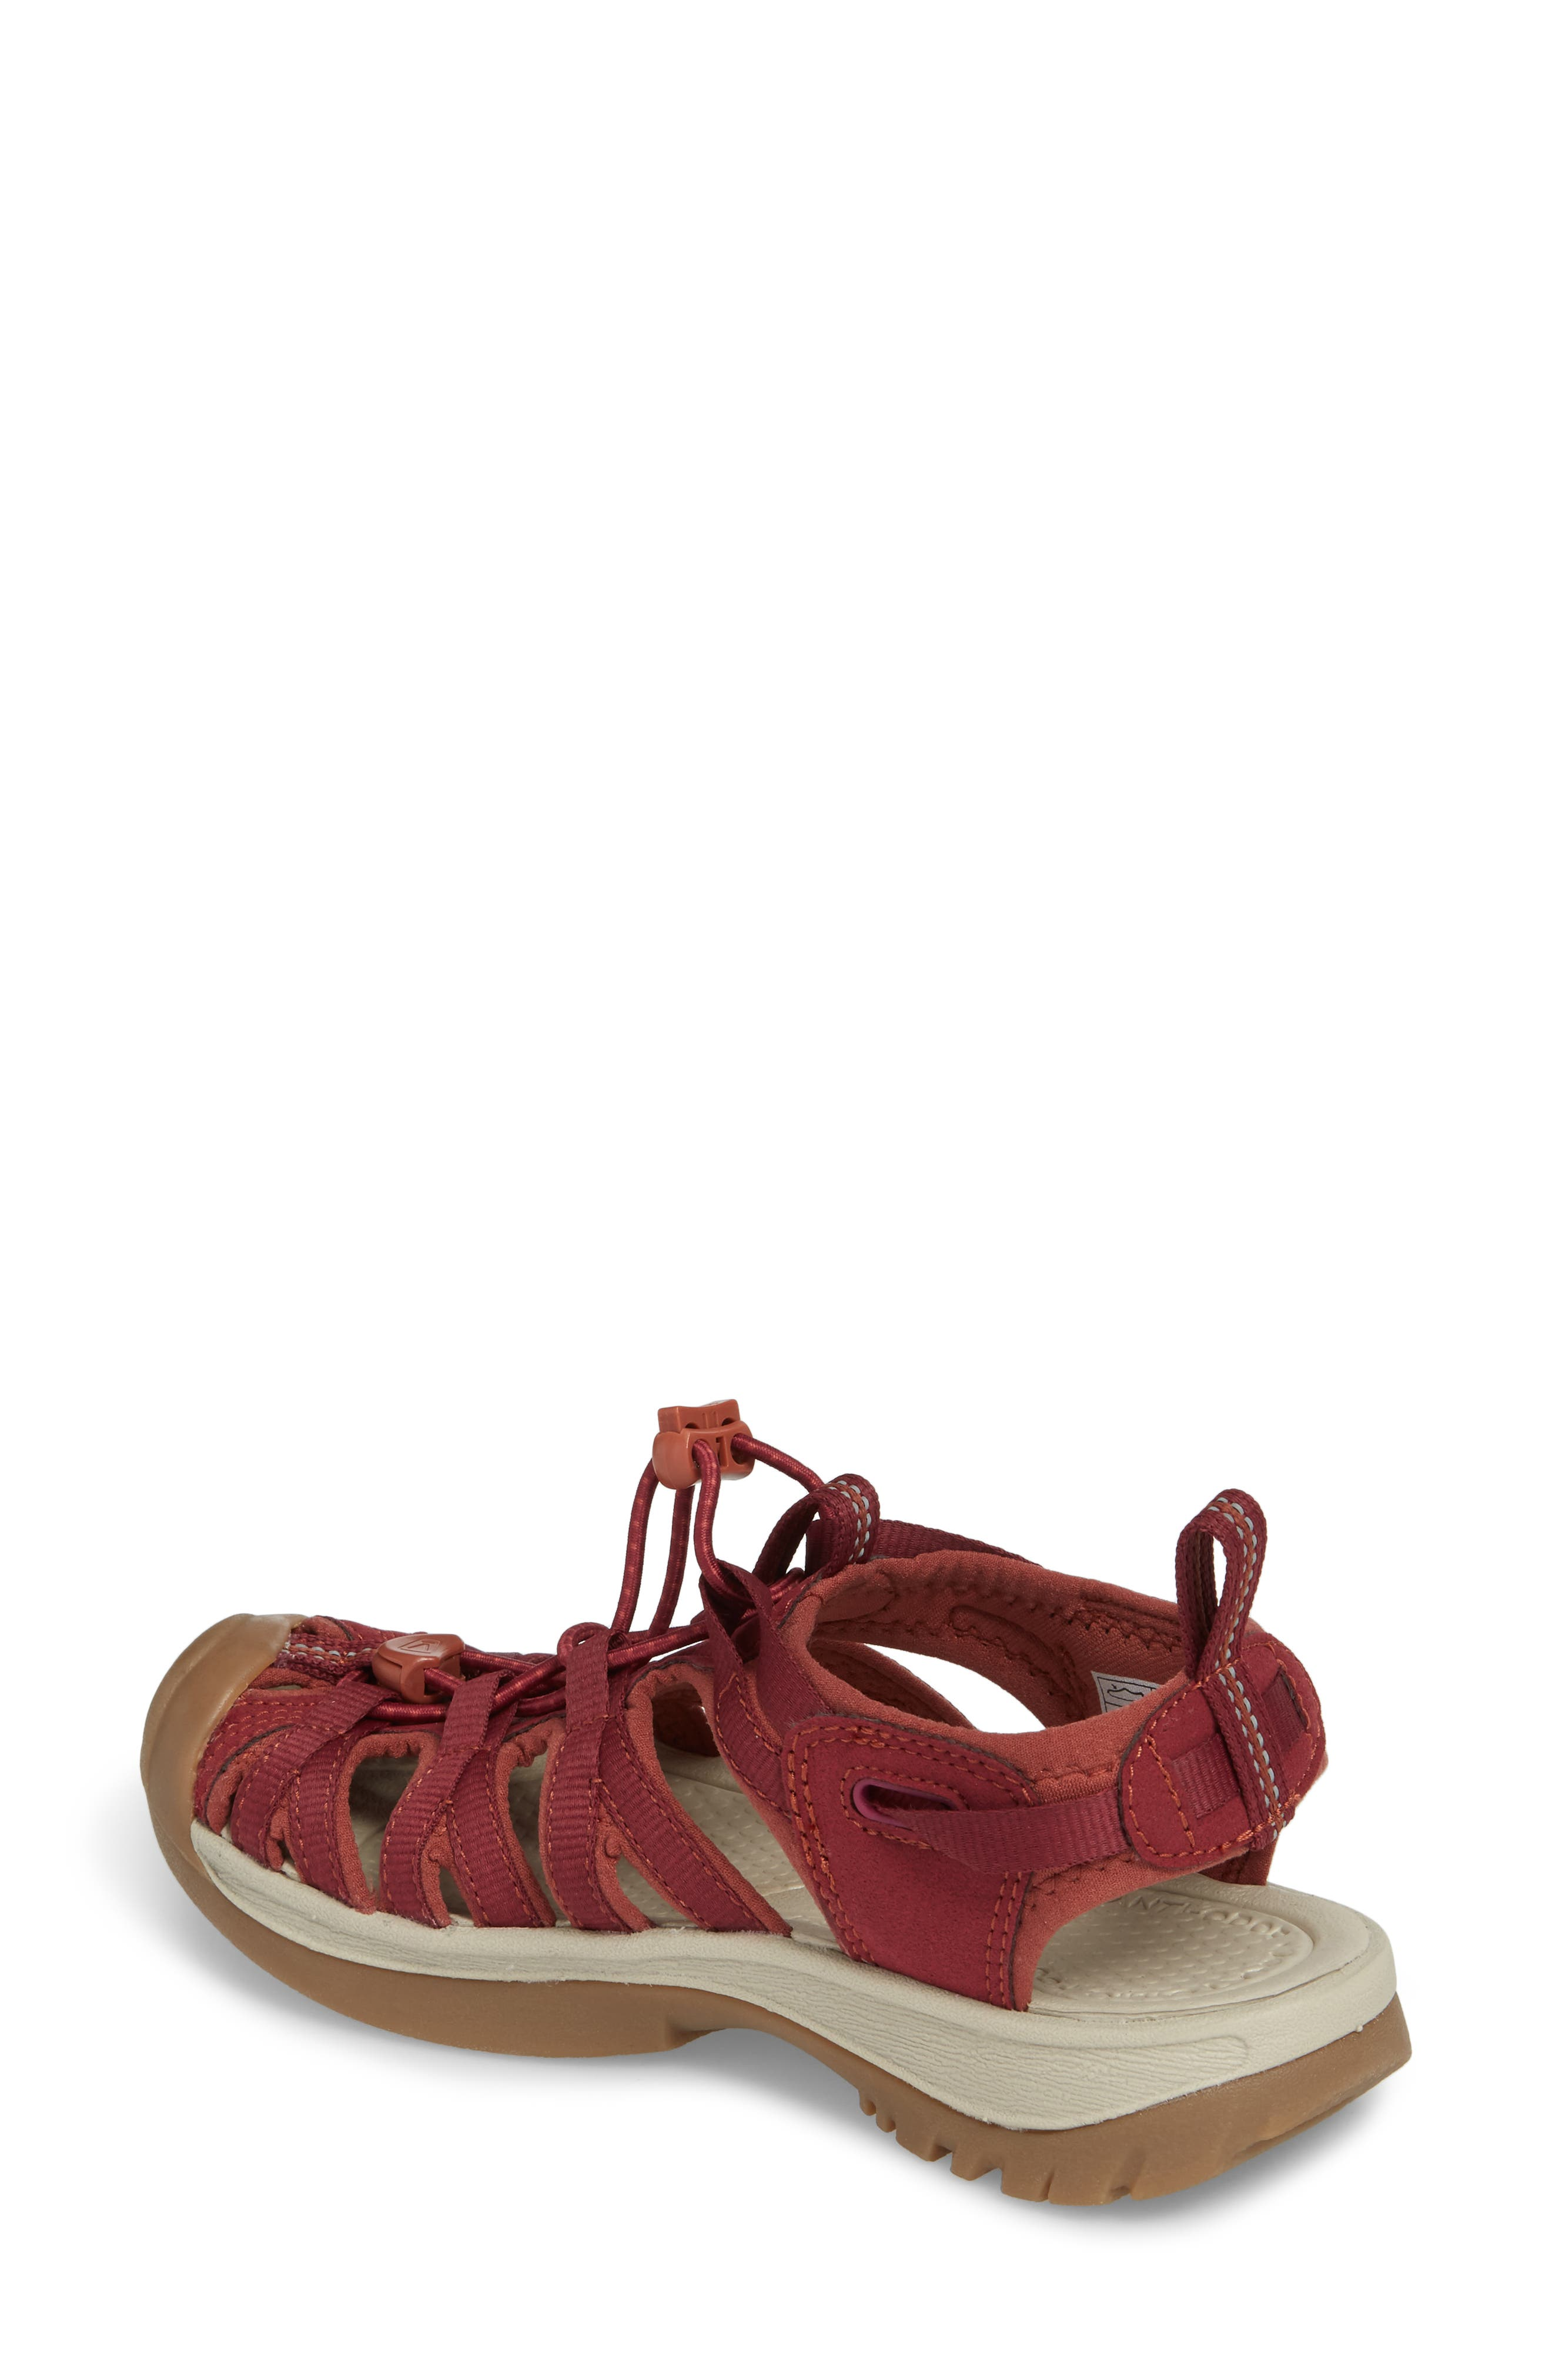 'Whisper' Water Friendly Sport Sandal,                             Alternate thumbnail 2, color,                             Rhododendron/ Marsala